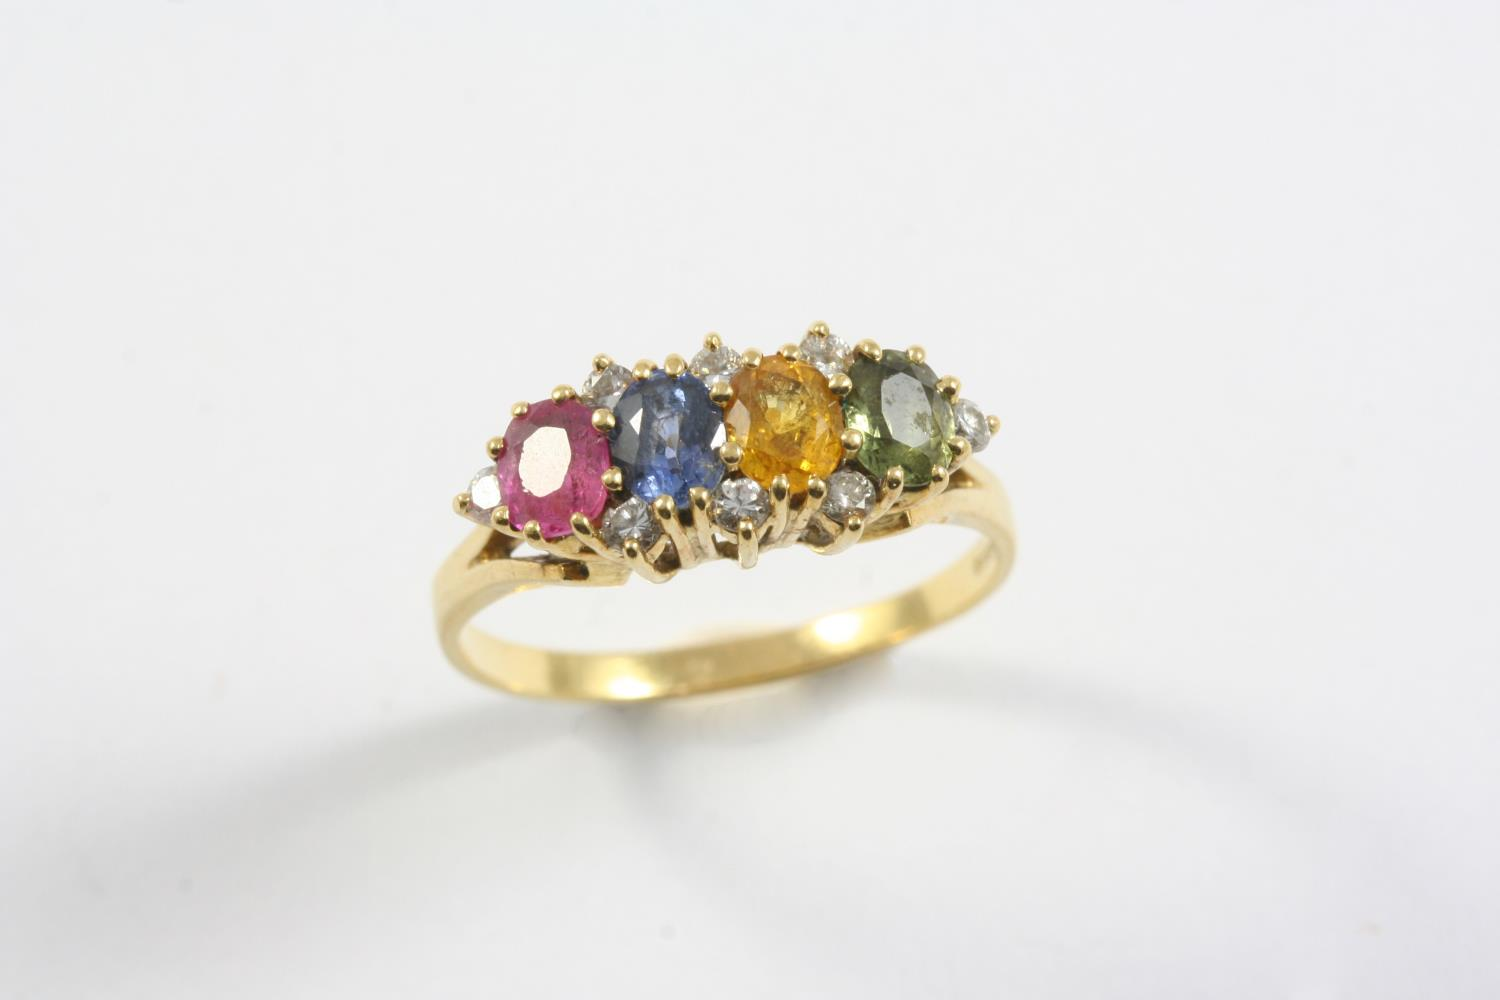 A MULIT COLOURED SAPPHIRE AND DIAMOND RING set with pink, yellow, green and blue oval-shaped